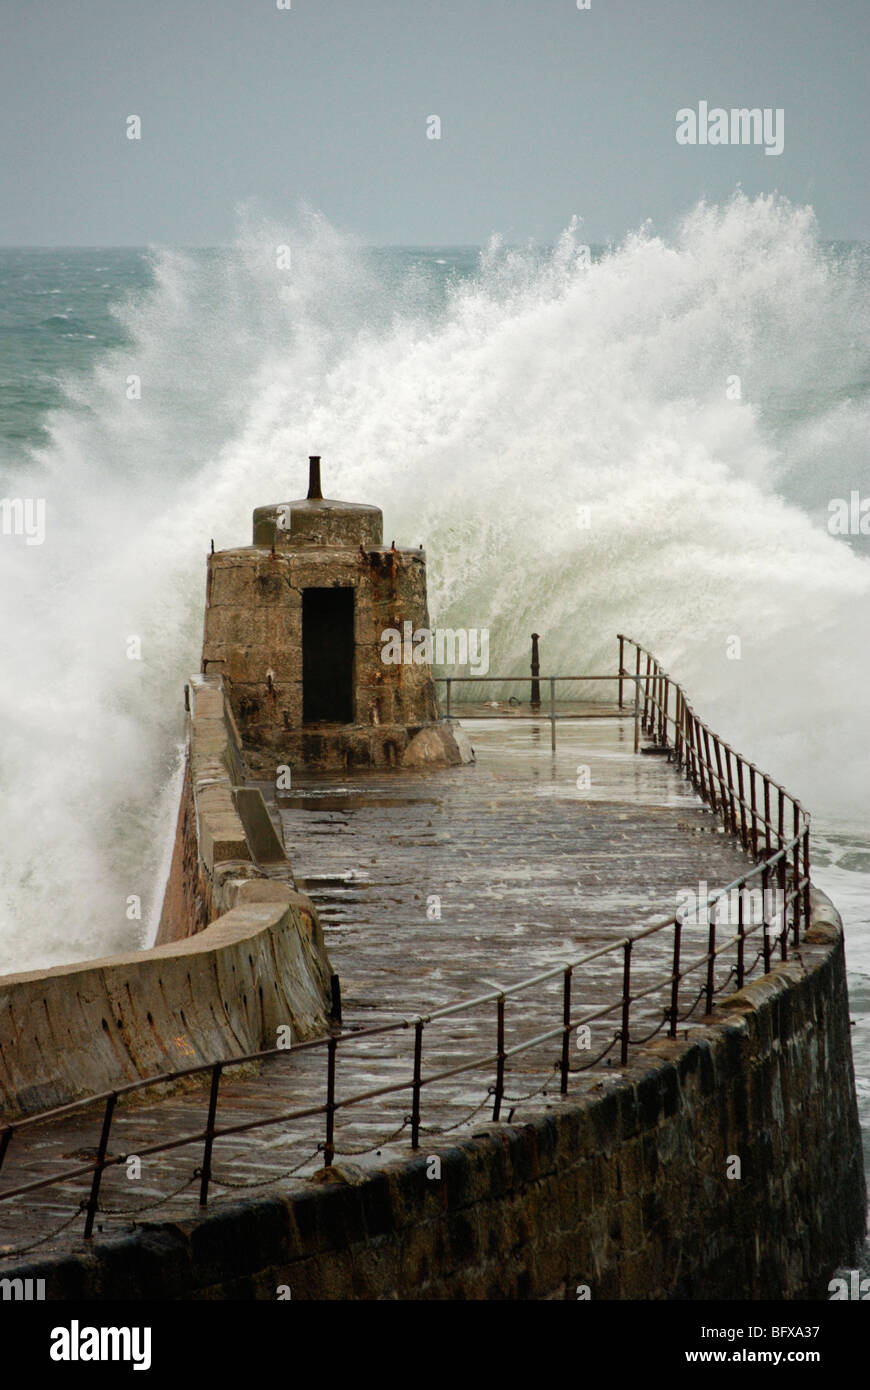 waves crashing against the old pier at portreath in cornwall, uk - Stock Image